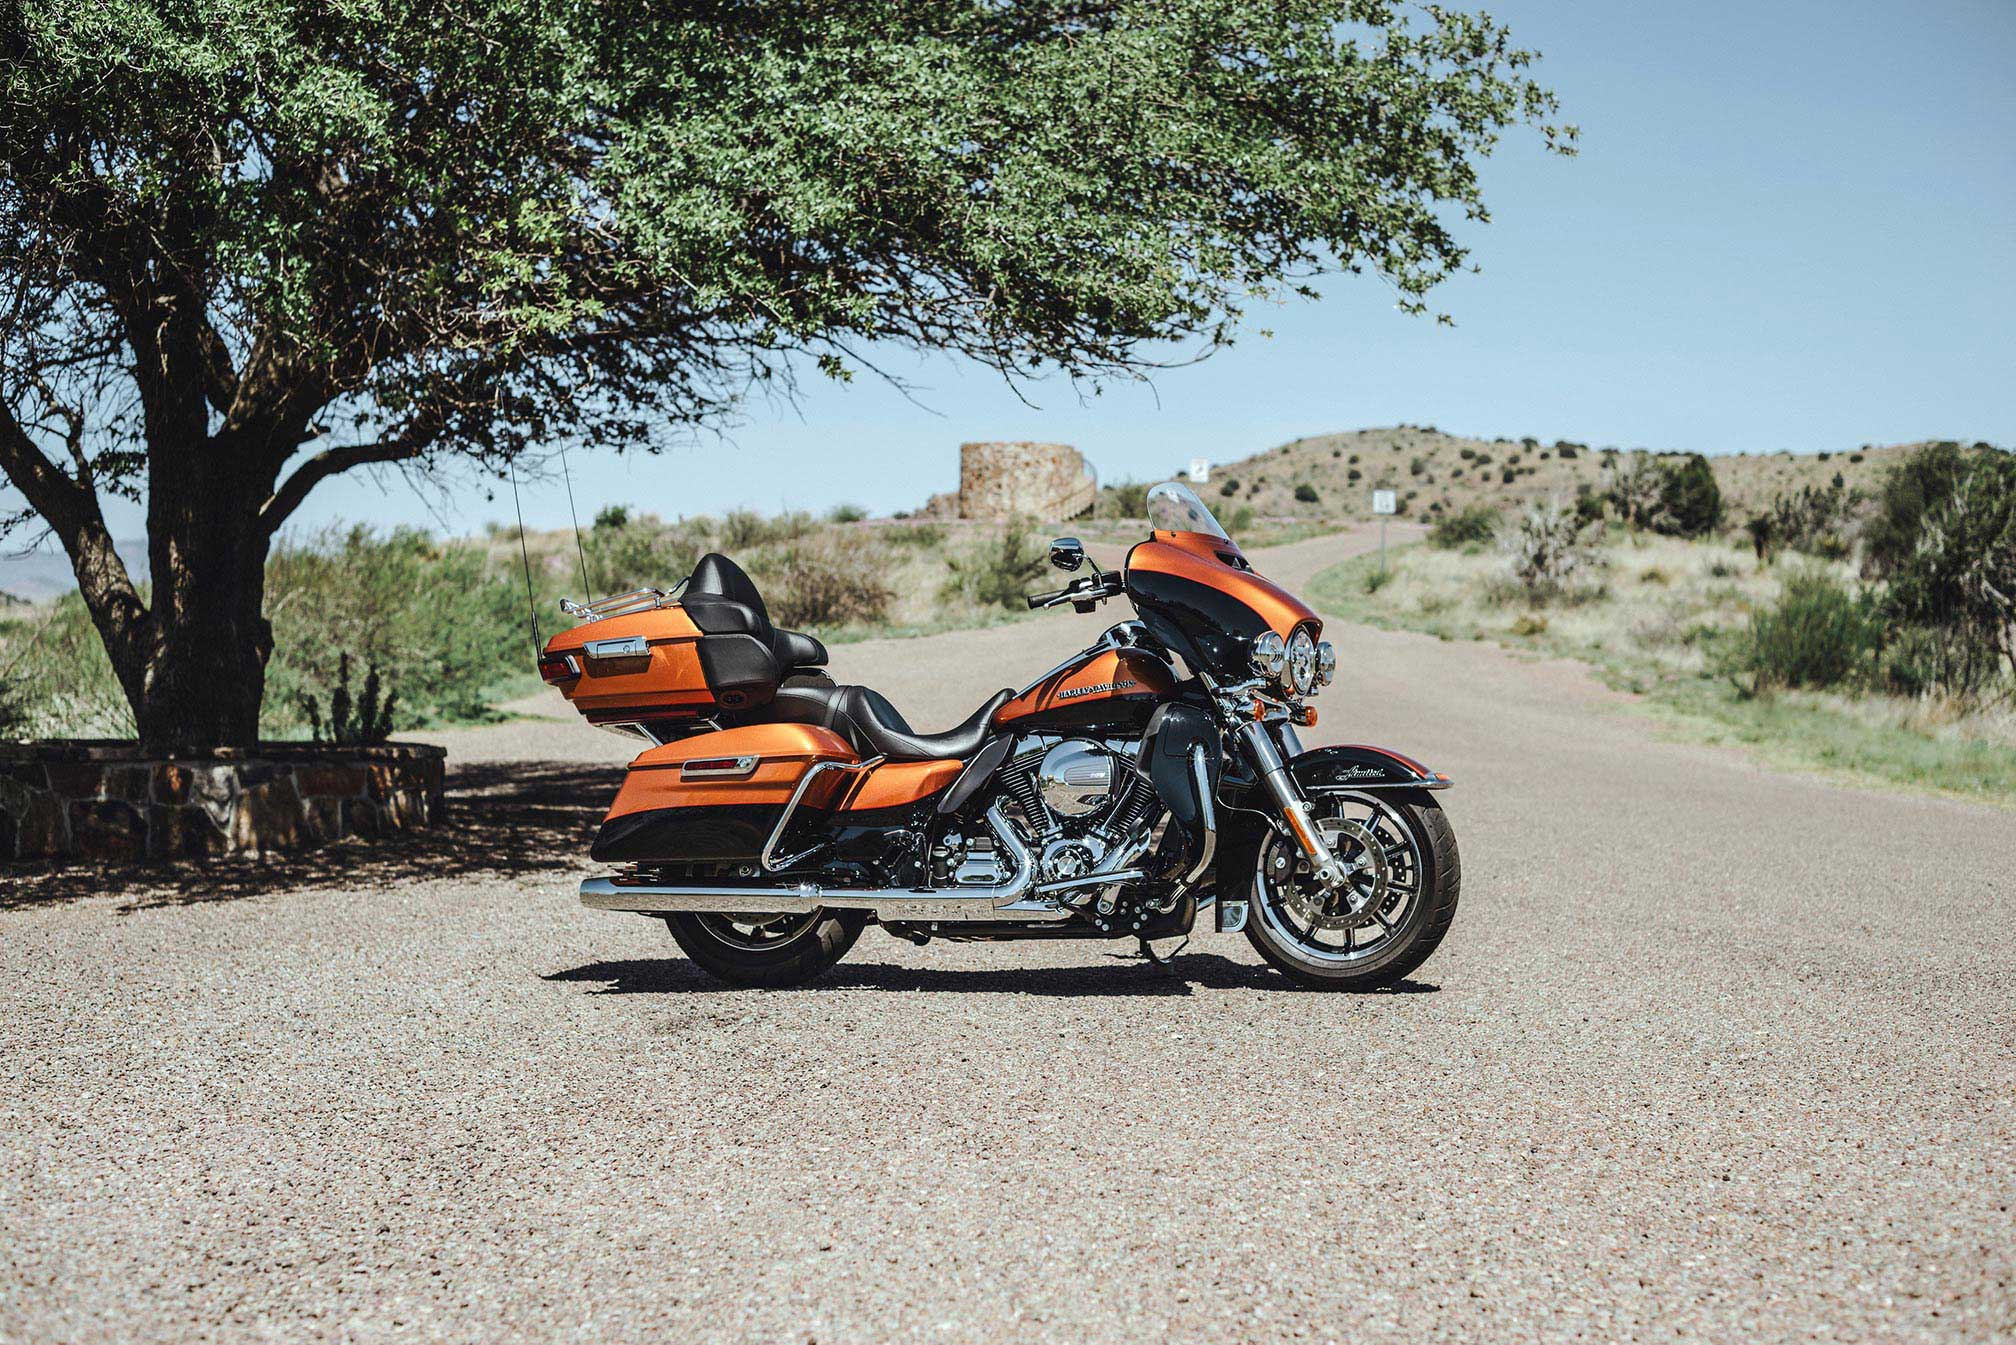 2016 Harley Davidson Touring Ultra Limited Low